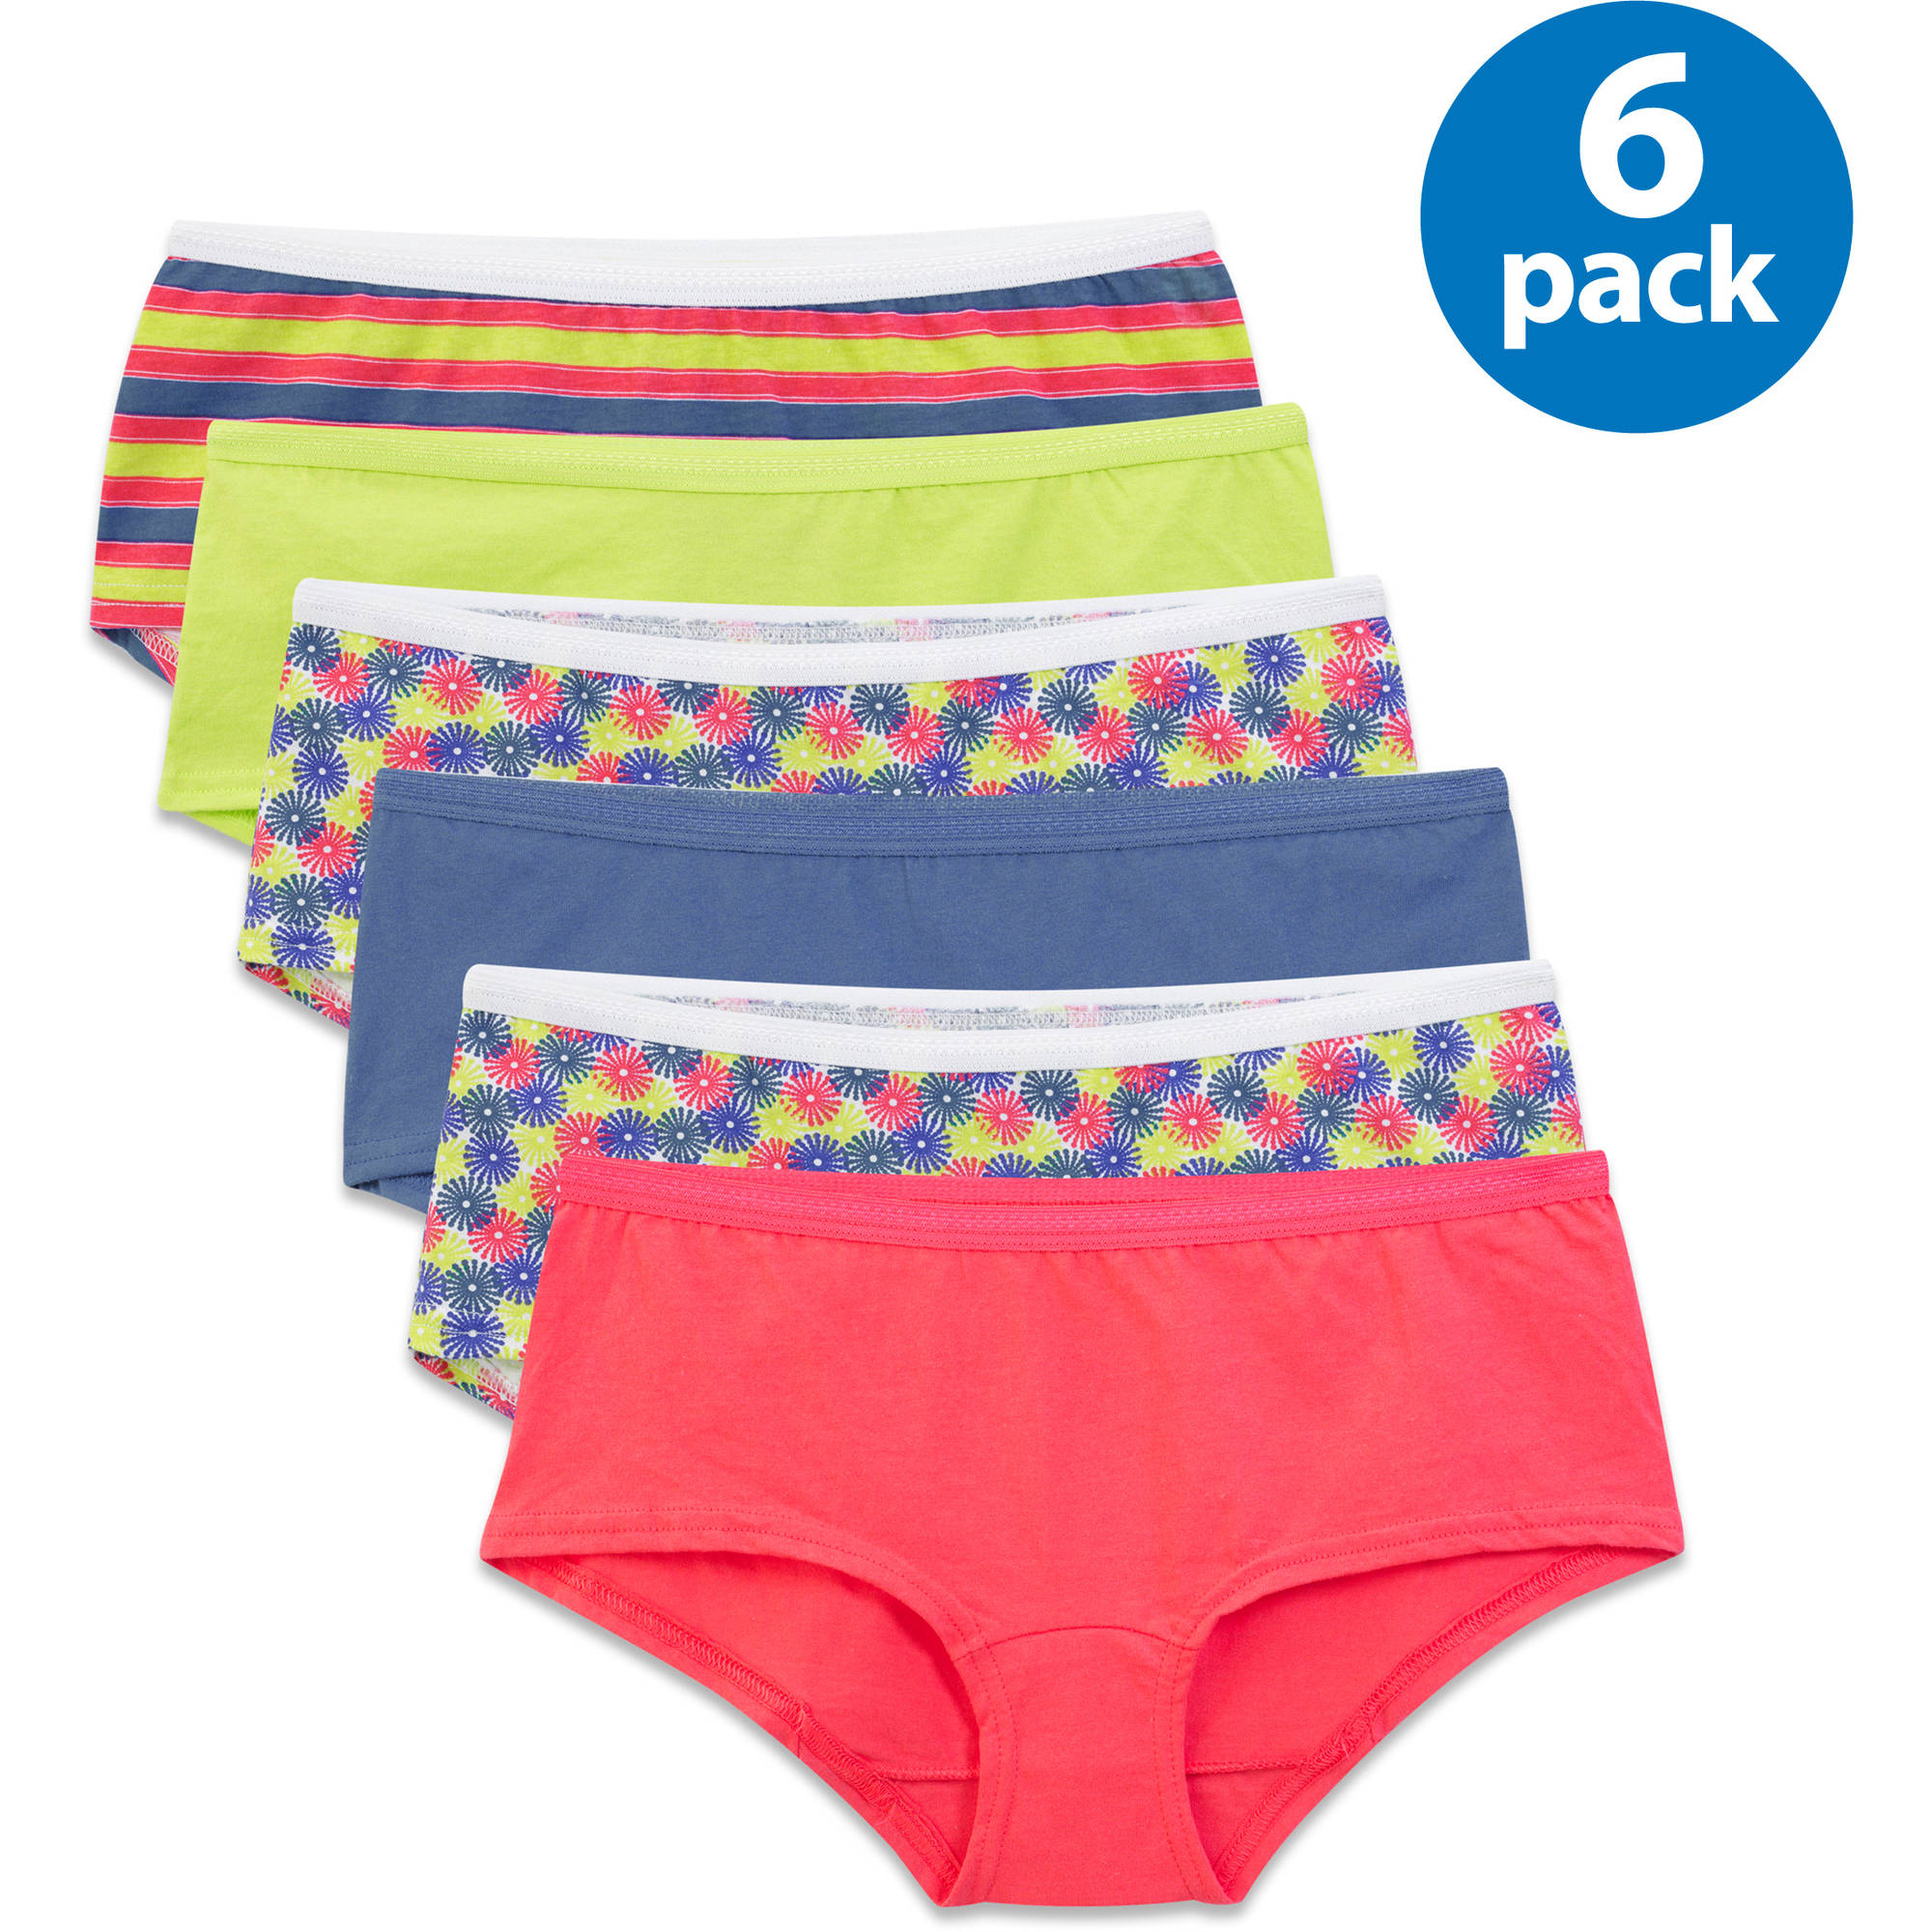 Fruit of the Loom Ladies' 6pk Cotton Assorted Boy Shorts